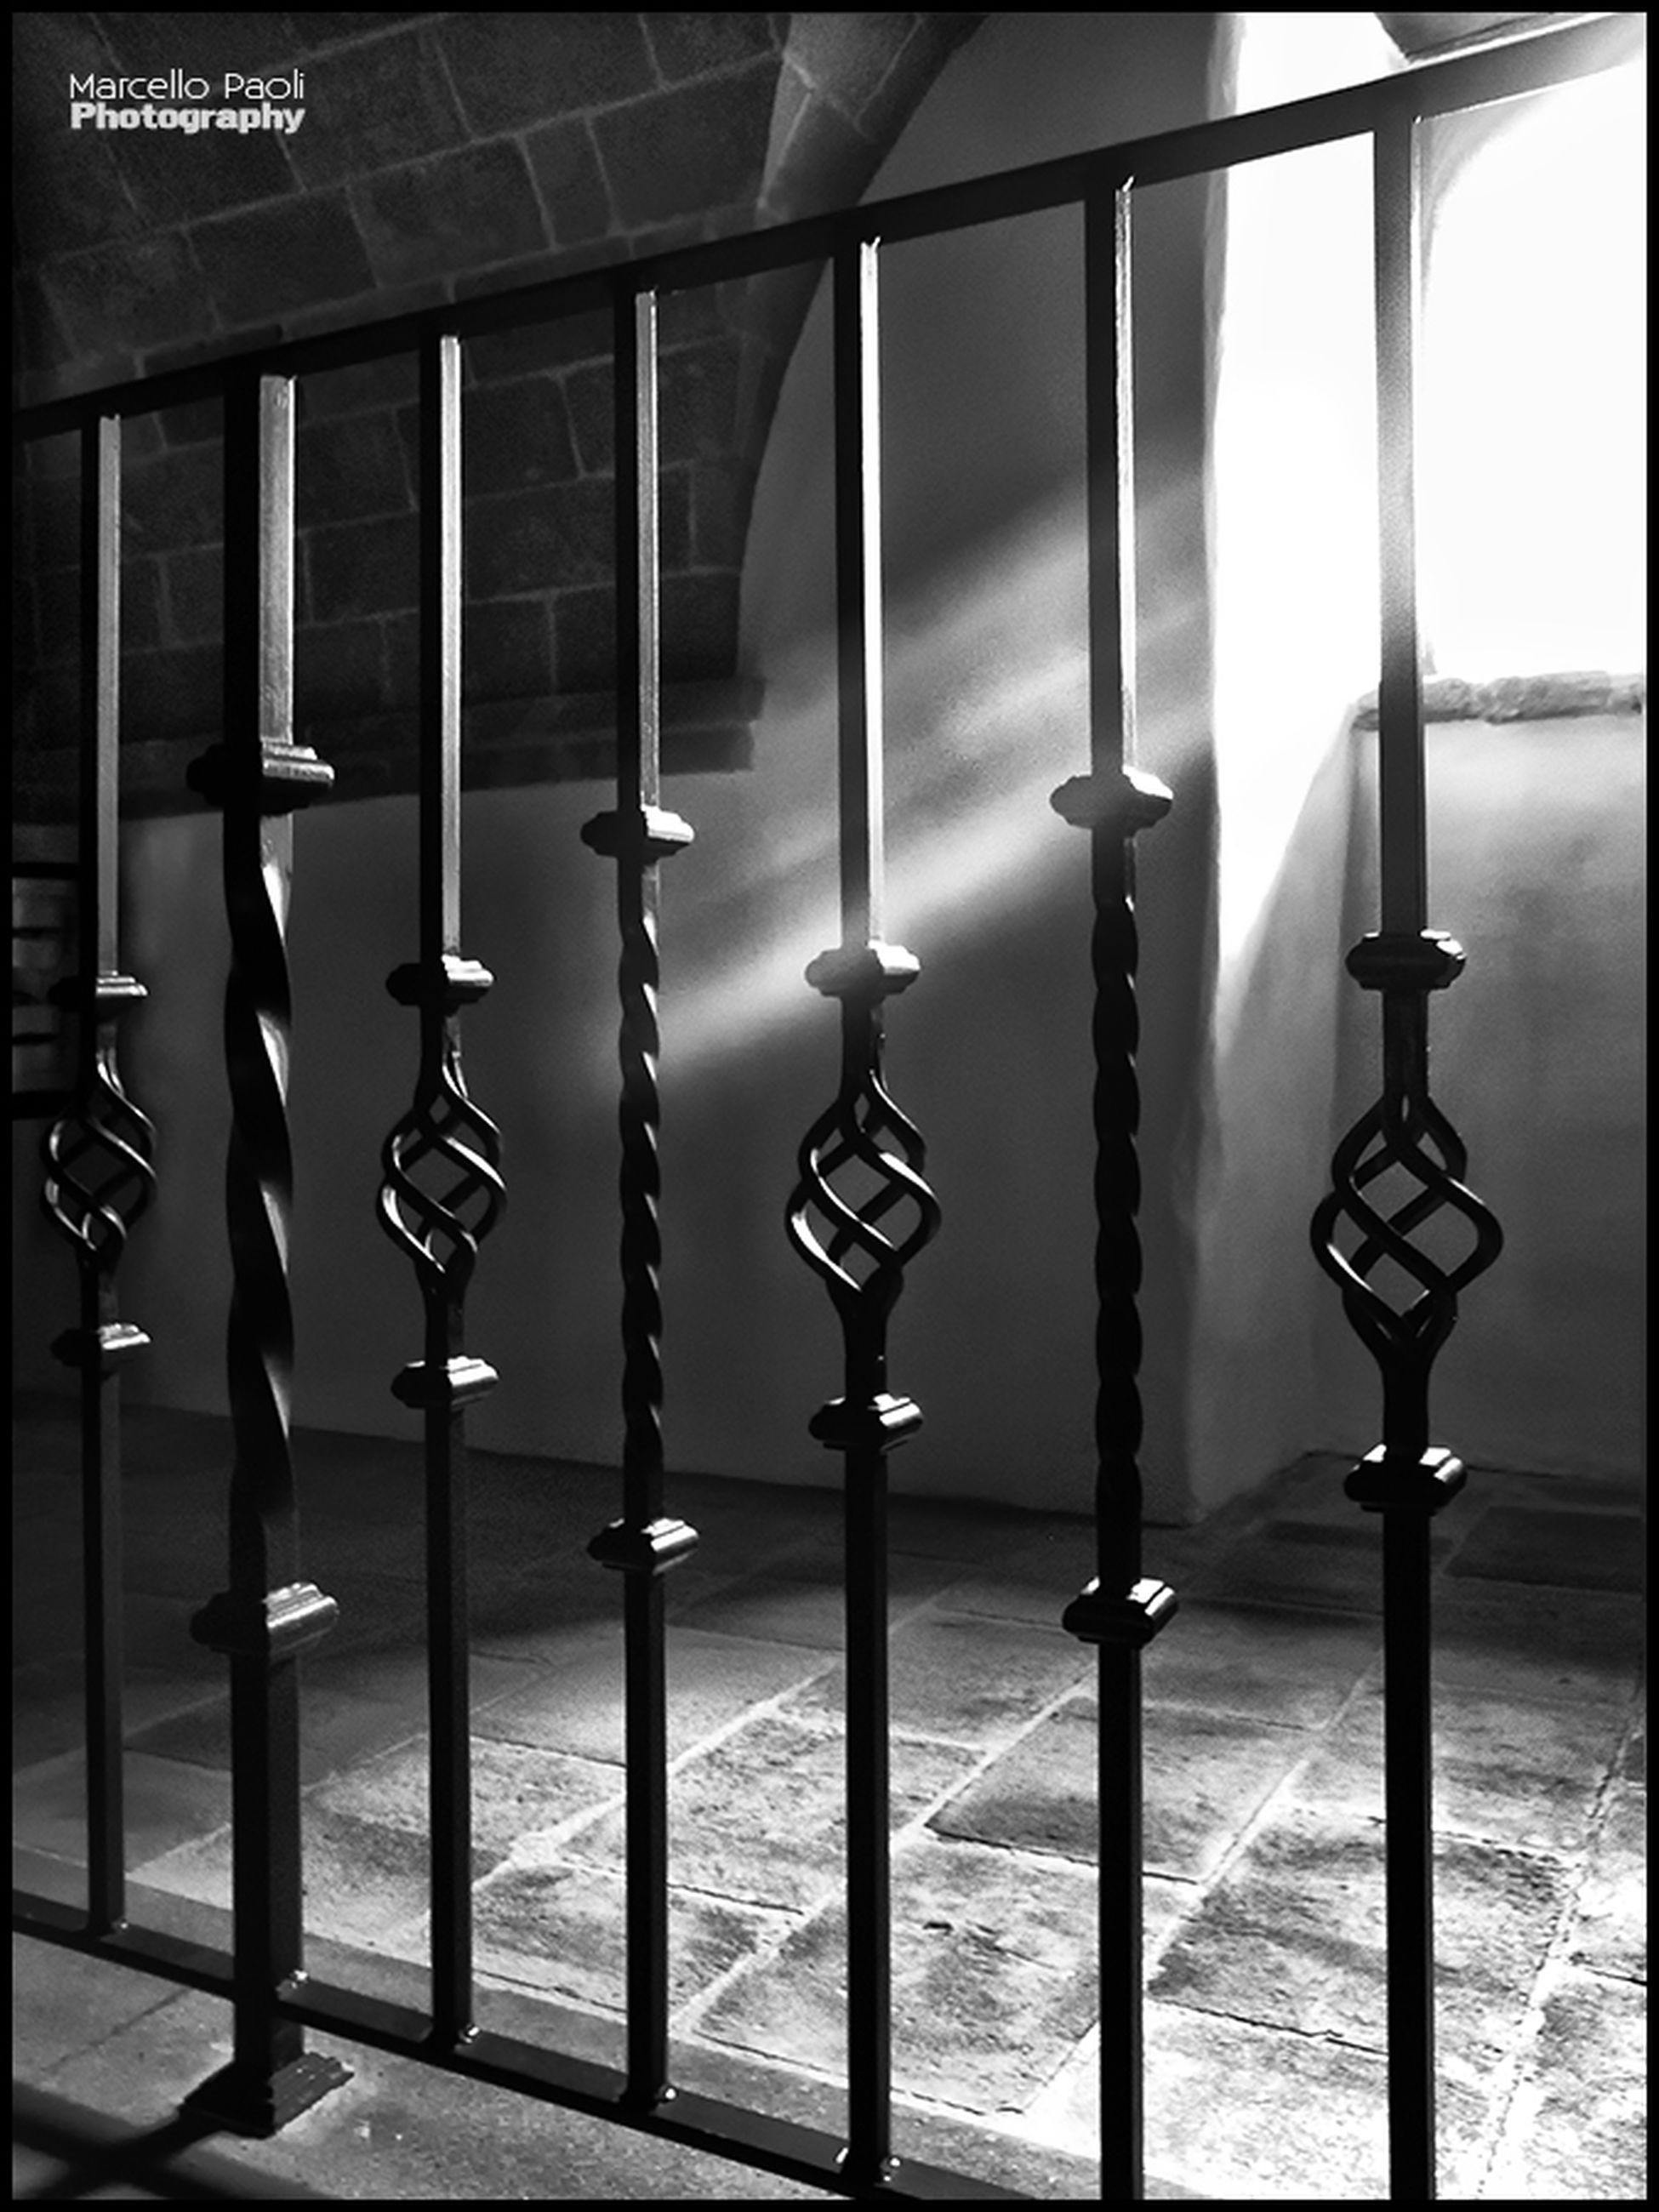 metal, built structure, architectural column, architecture, protection, safety, security, in a row, no people, metallic, pole, day, text, connection, railing, column, fence, outdoors, close-up, sunlight